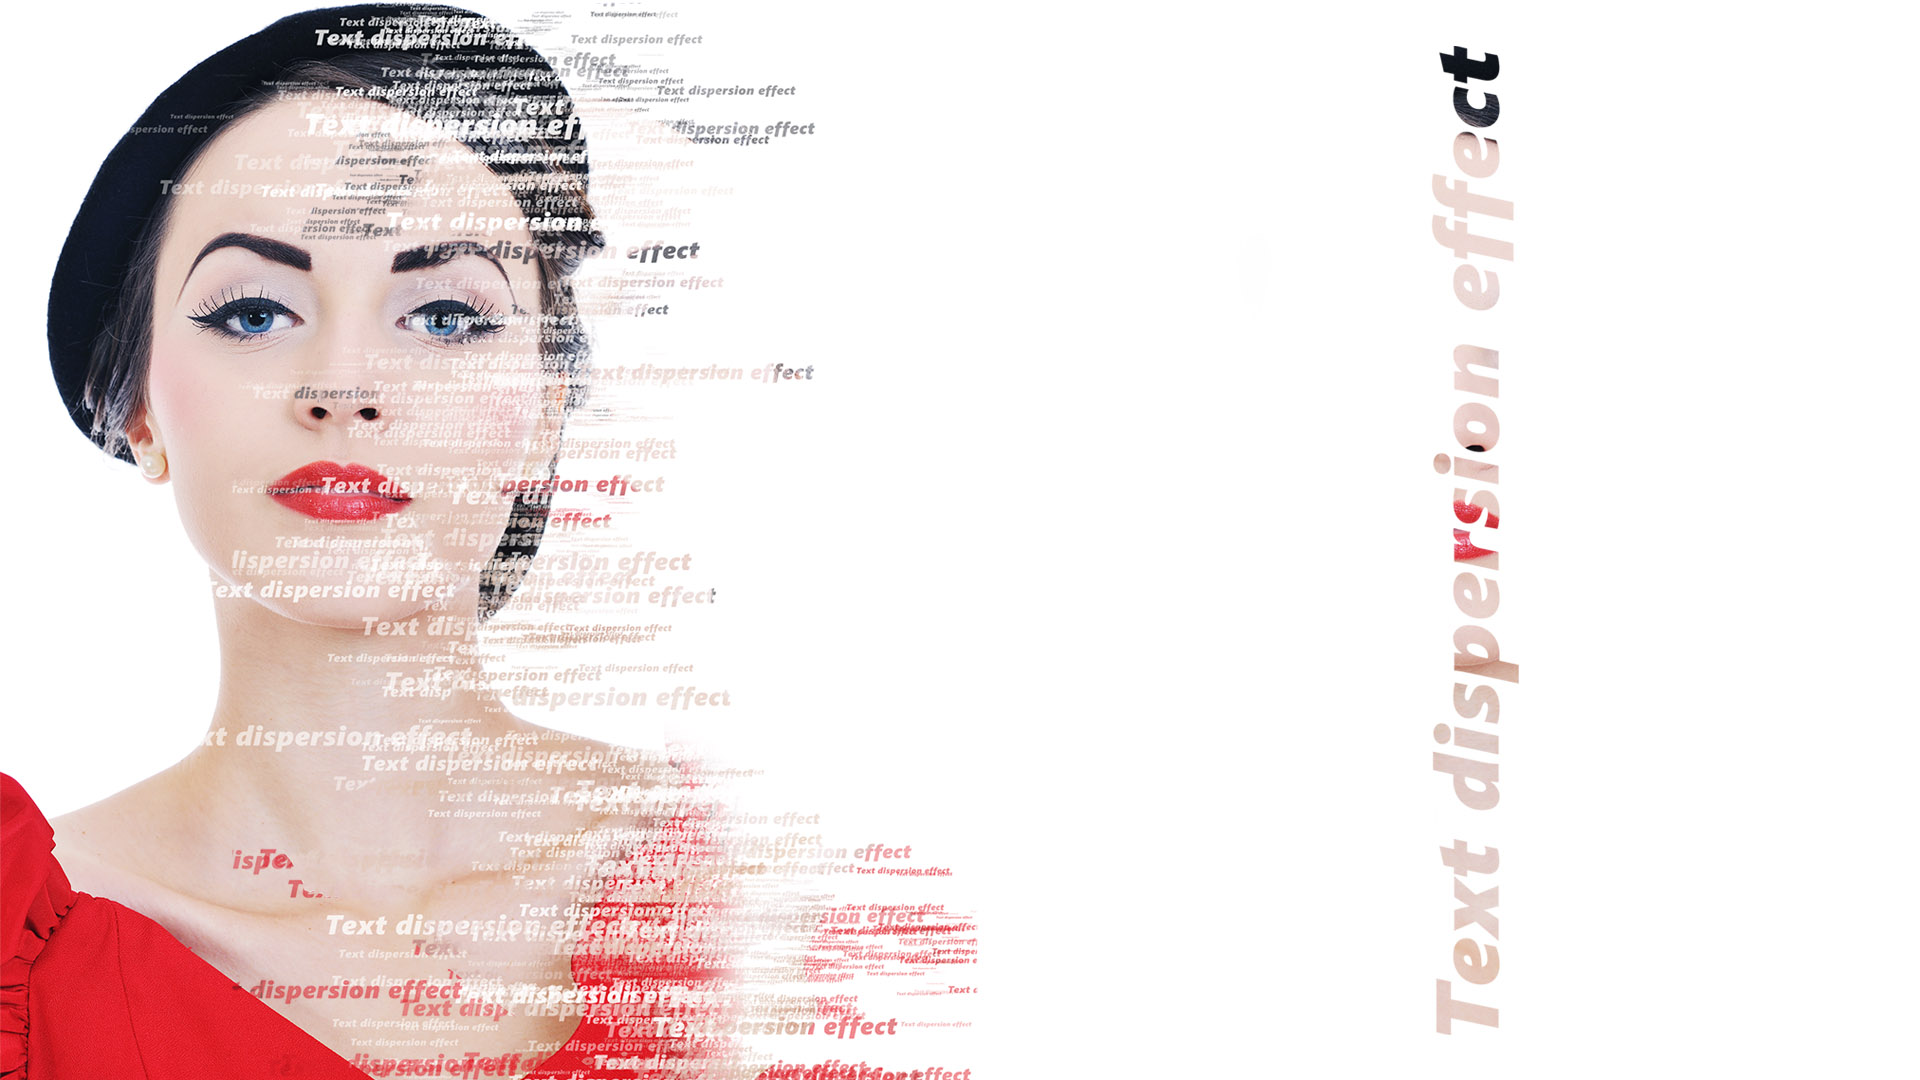 Photoshop text dispersion effect photoshop tutorial photoshop photoshop text dispersion effect photoshop tutorial baditri Image collections